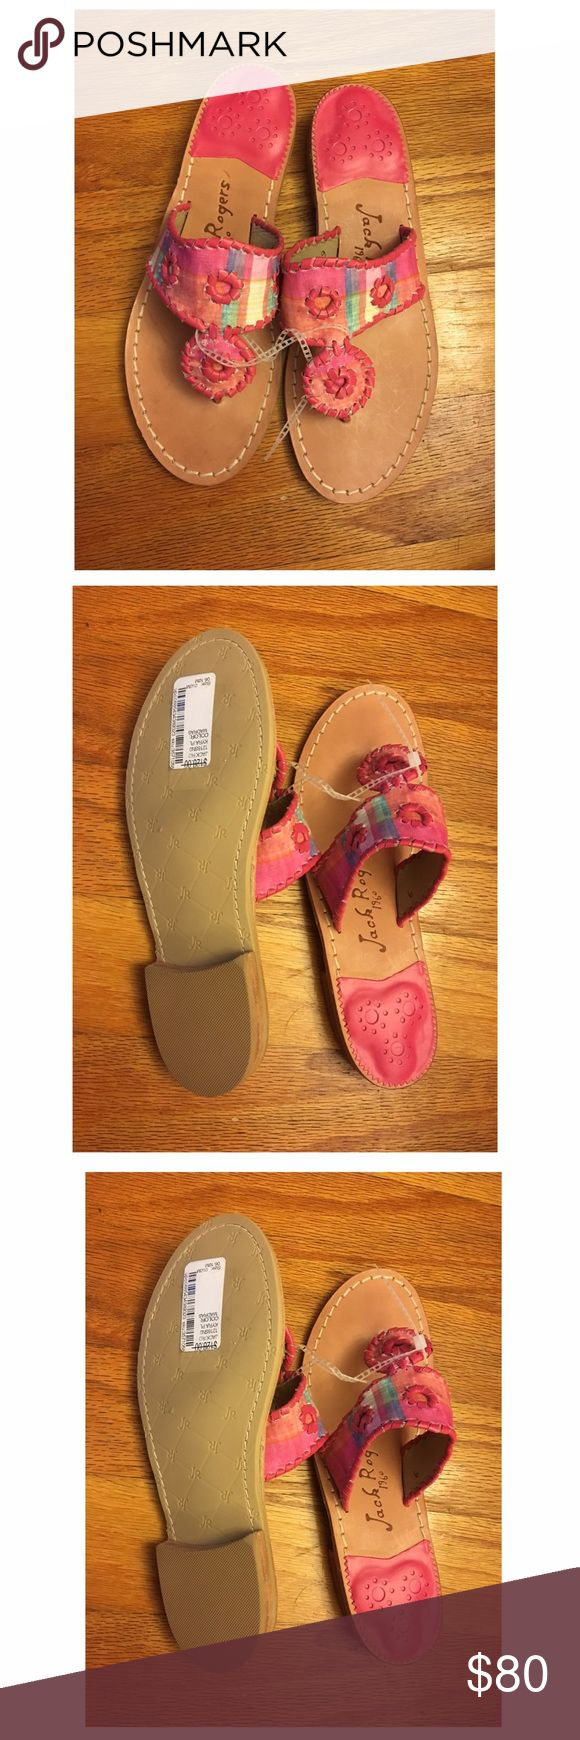 New Jack Rogers Sandals Size 6 New with tag. Never worn. Color: kyra plaid, madras. Box is not included. Jack Rogers Shoes Sandals